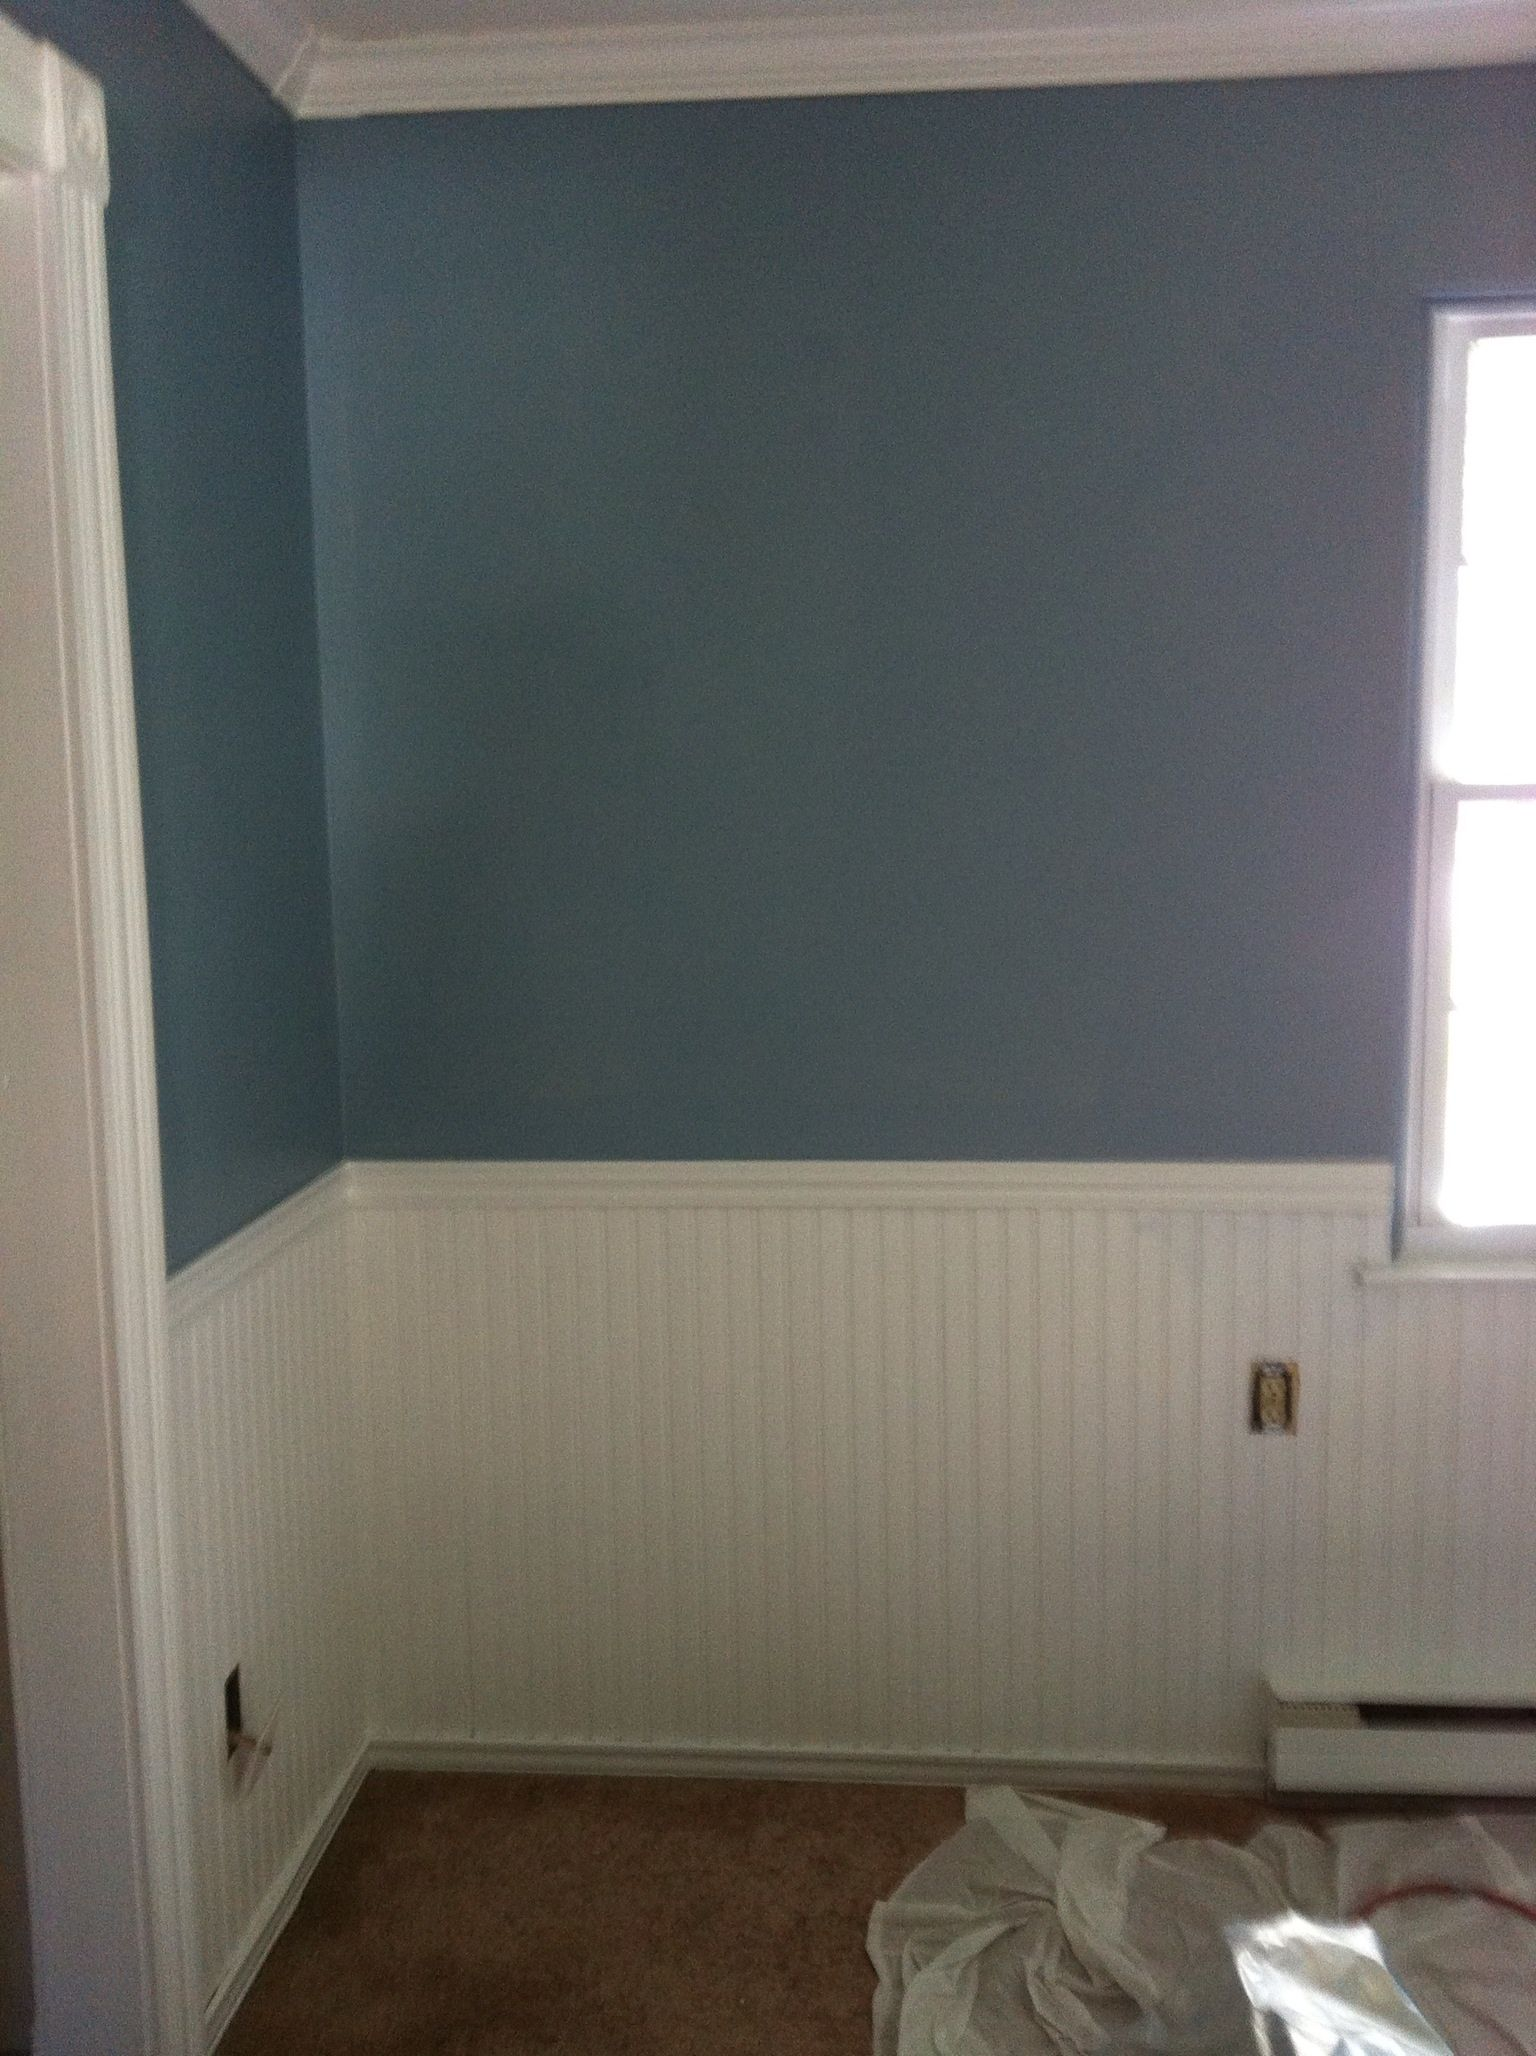 Wainscoting master bedroom - Master Bedroom After With Sherwin Williams Meditative Blue Eggshell With White Eggshell On Wainscoting